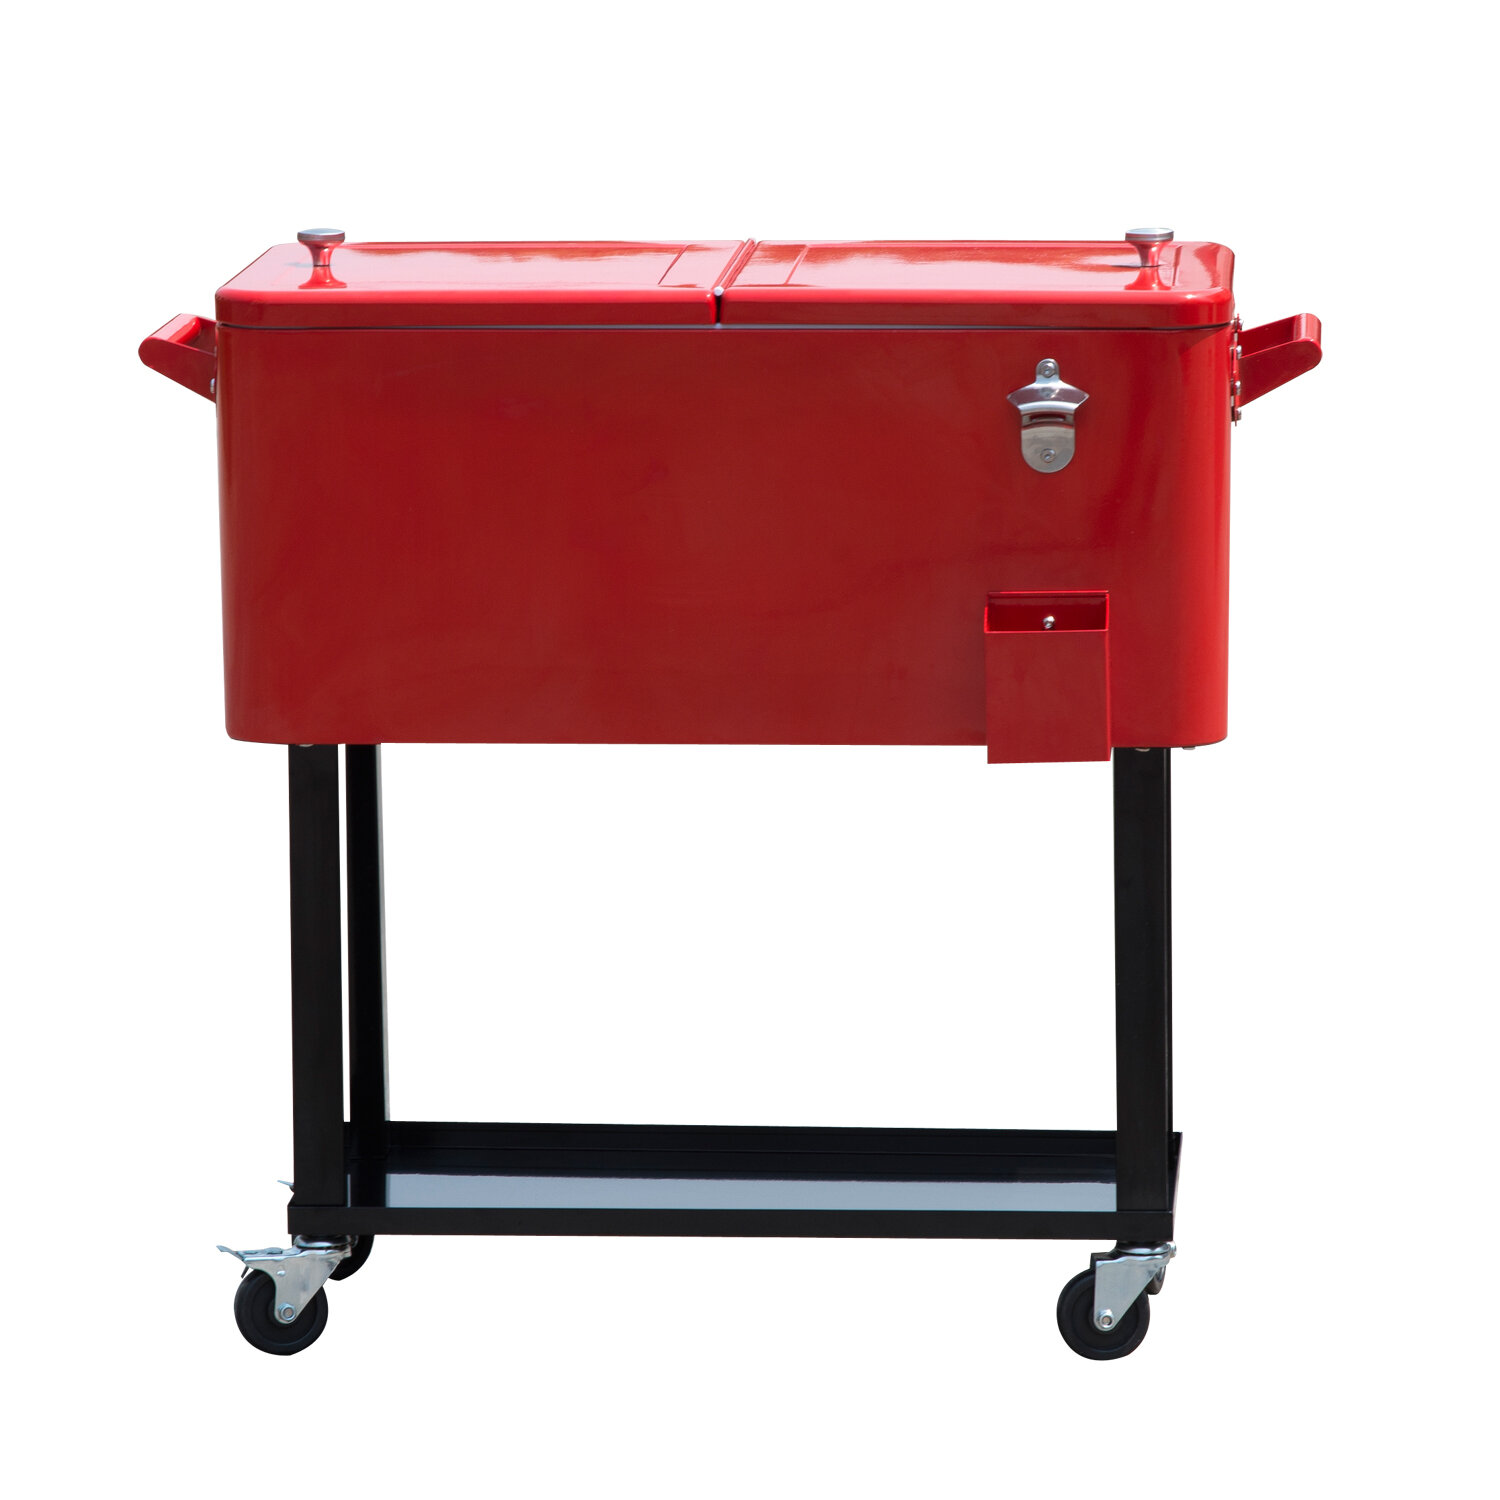 db78ae3d52bc3 Outsunny 80 Qt. Rolling Portable Drink Cooler Cart   Reviews